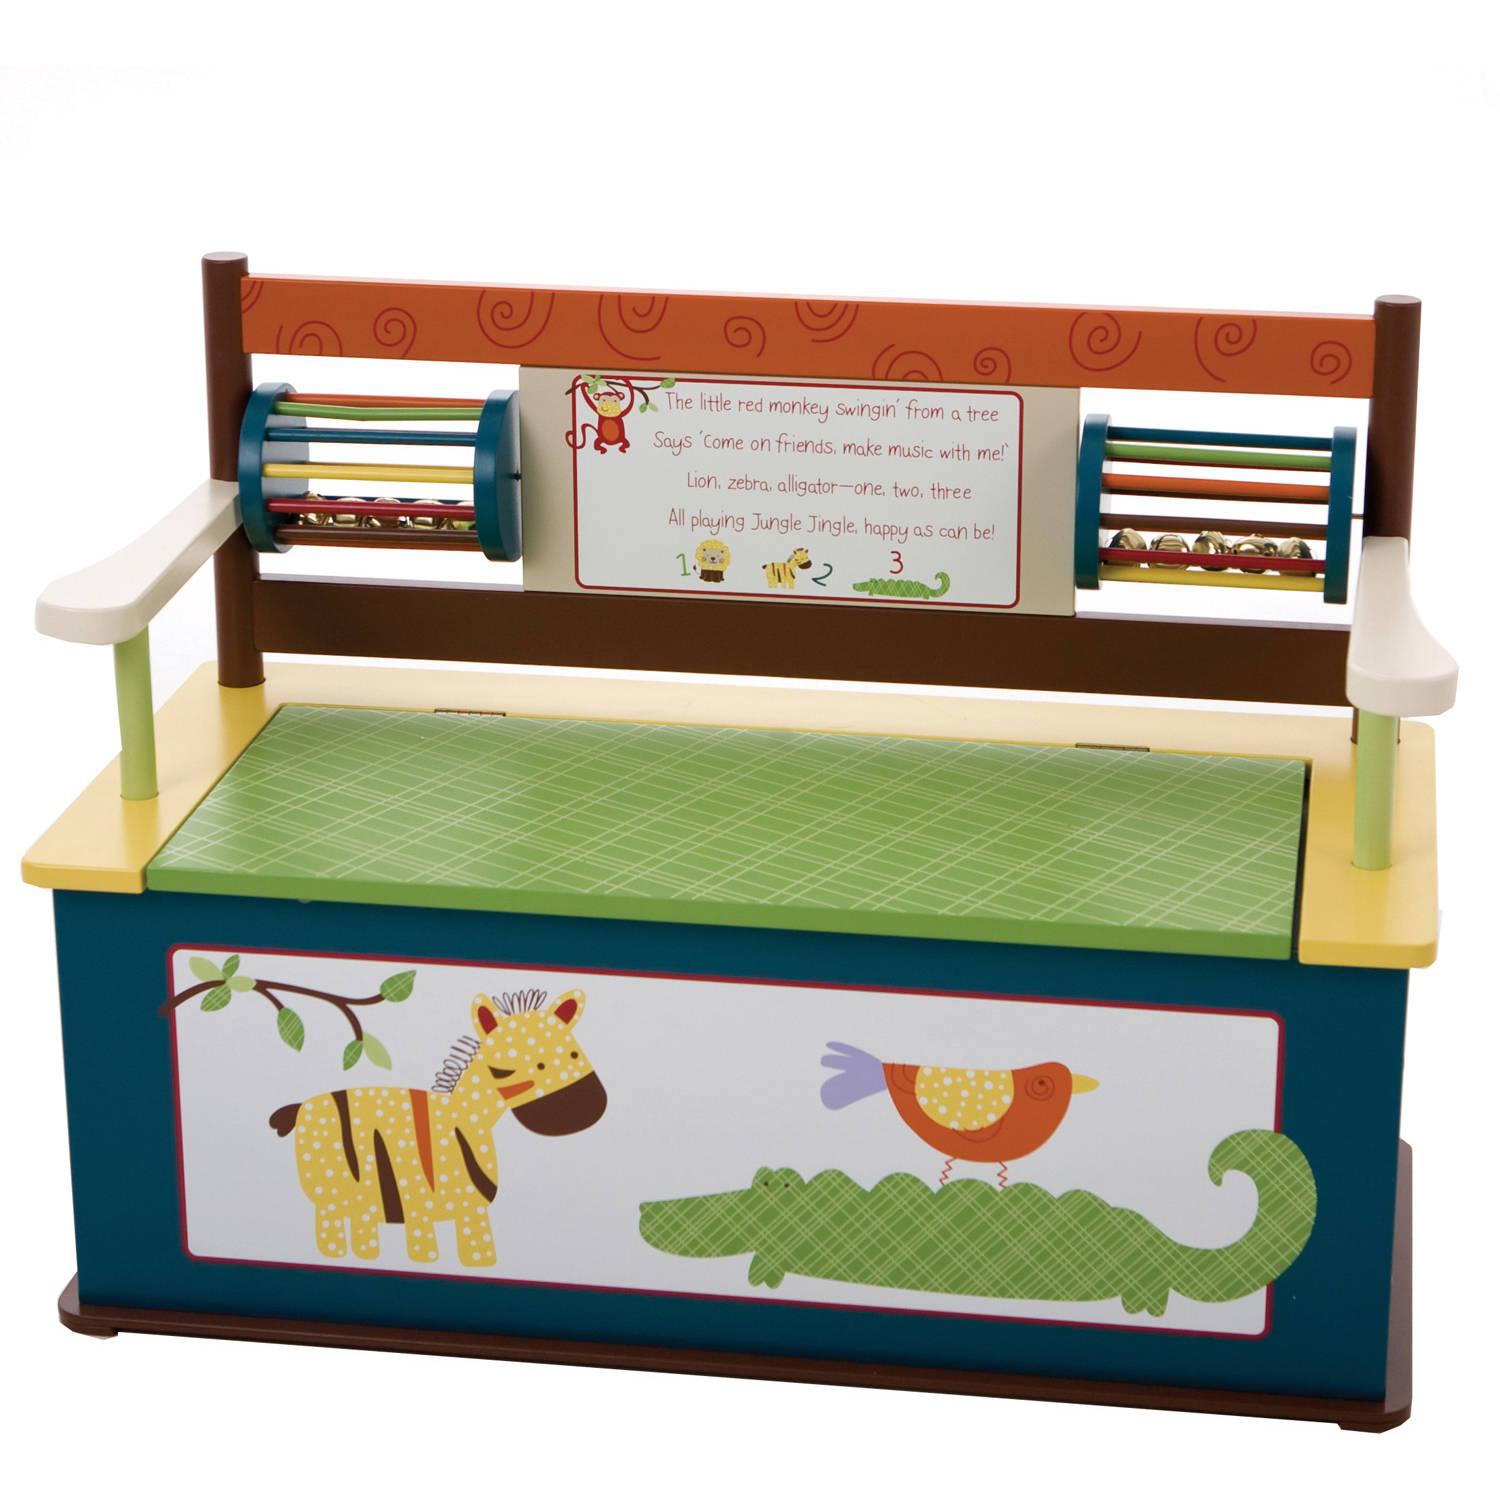 Levels of Discovery Jungle Jingle Bench Seat with Storage by Levels of Discovery